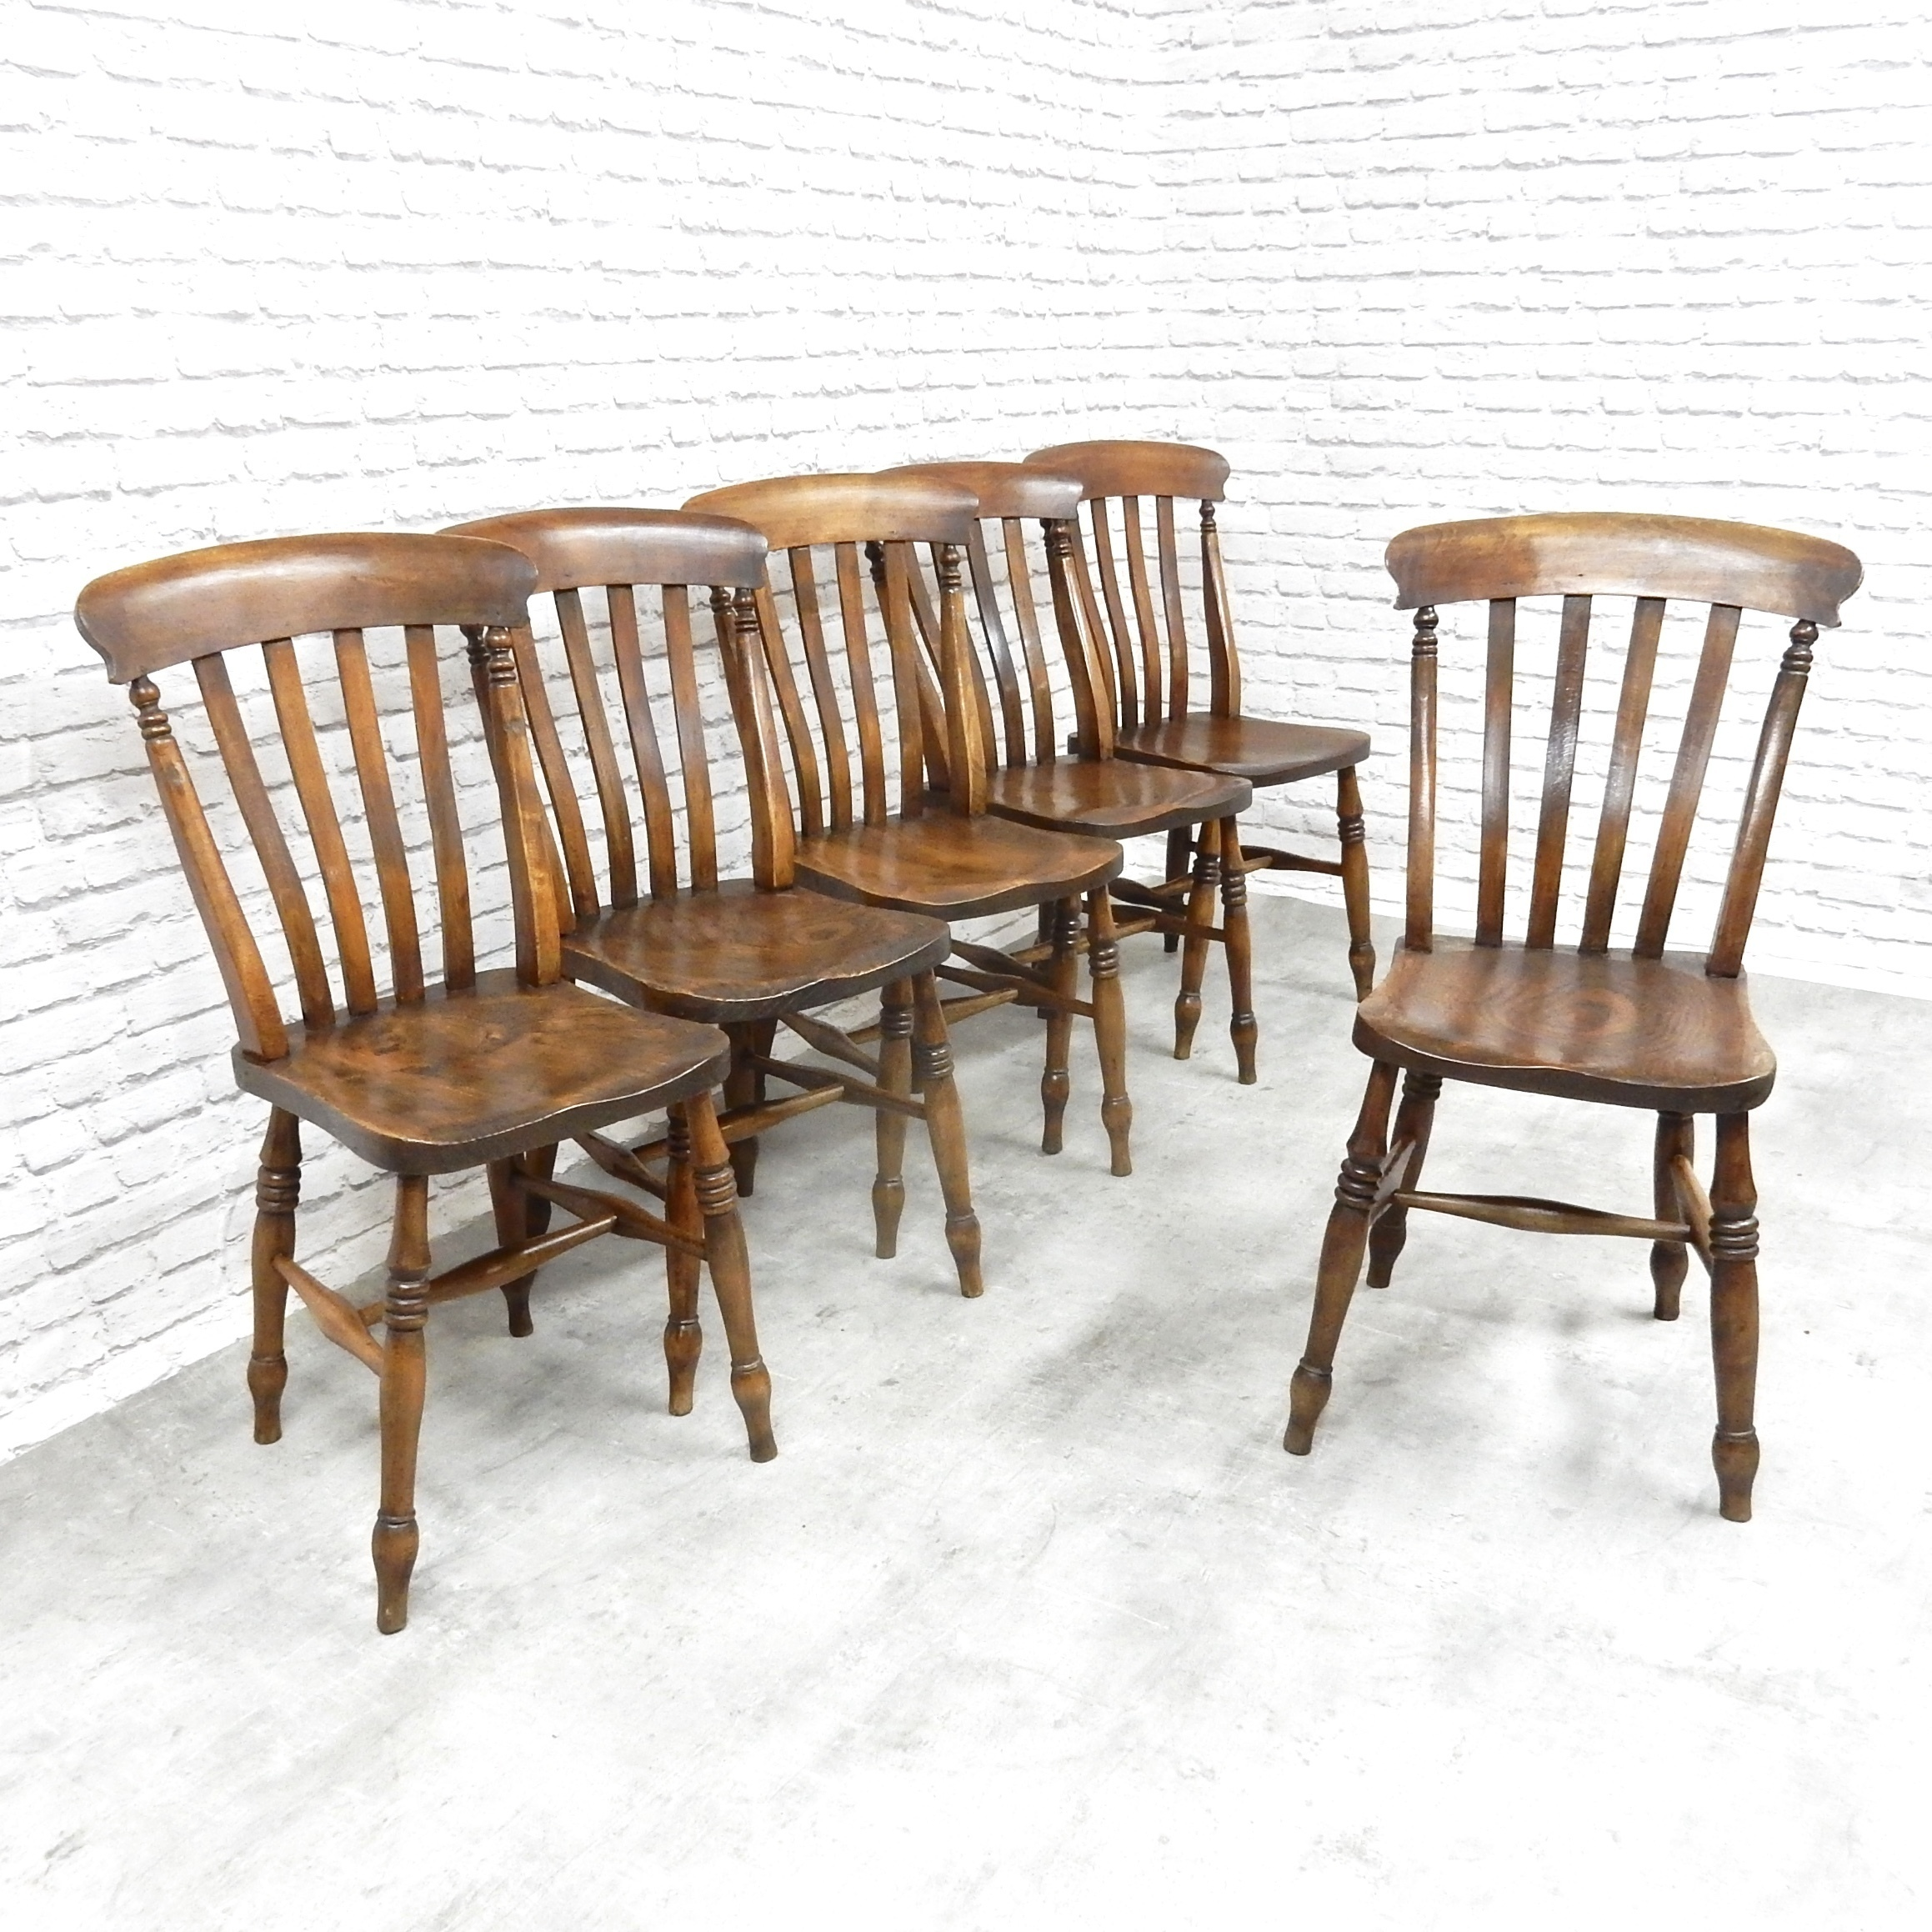 Country Kitchen Chairs Set Of 6 Antique Country Kitchen Chairs